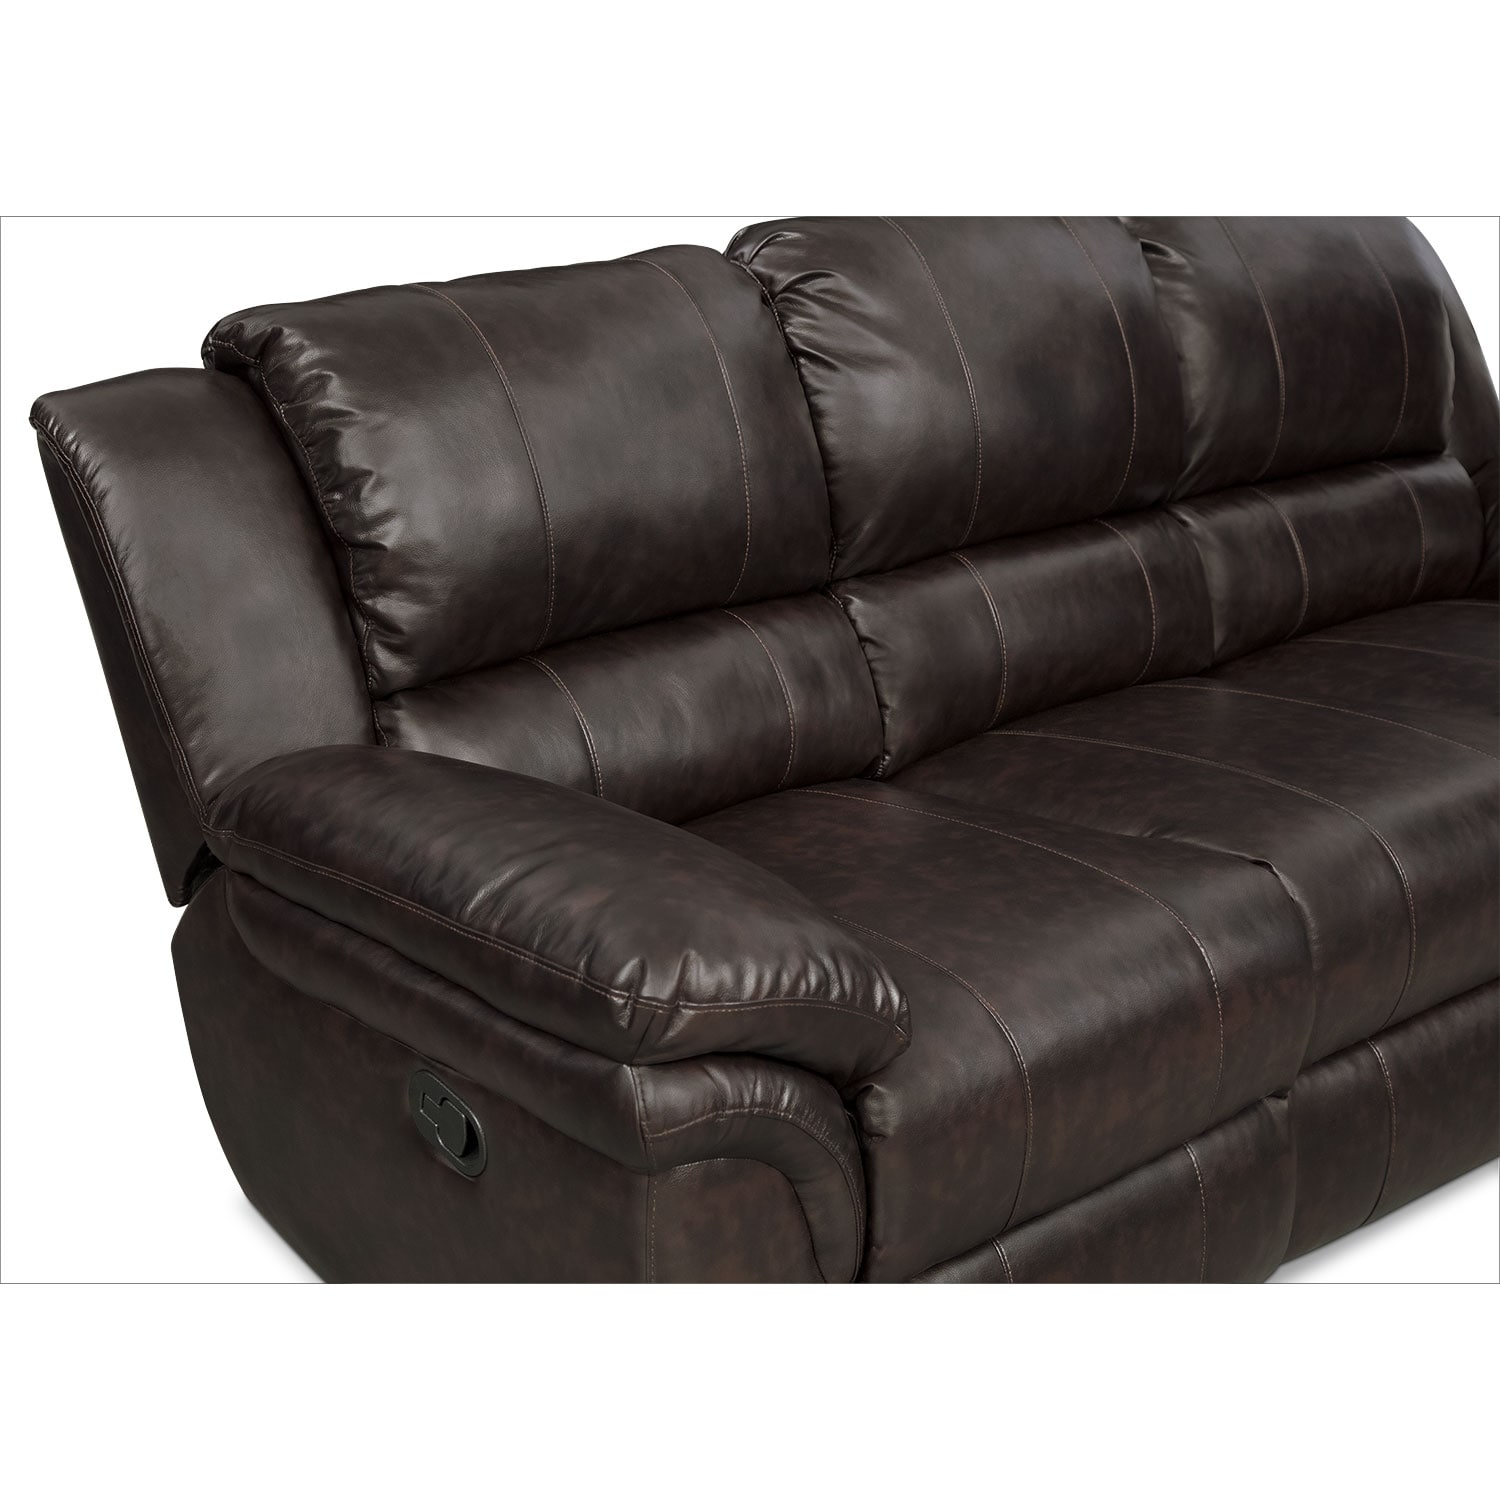 Aldo Manual Dual Reclining Sofa Loveseat And Recliner Set Brown Value City Furniture